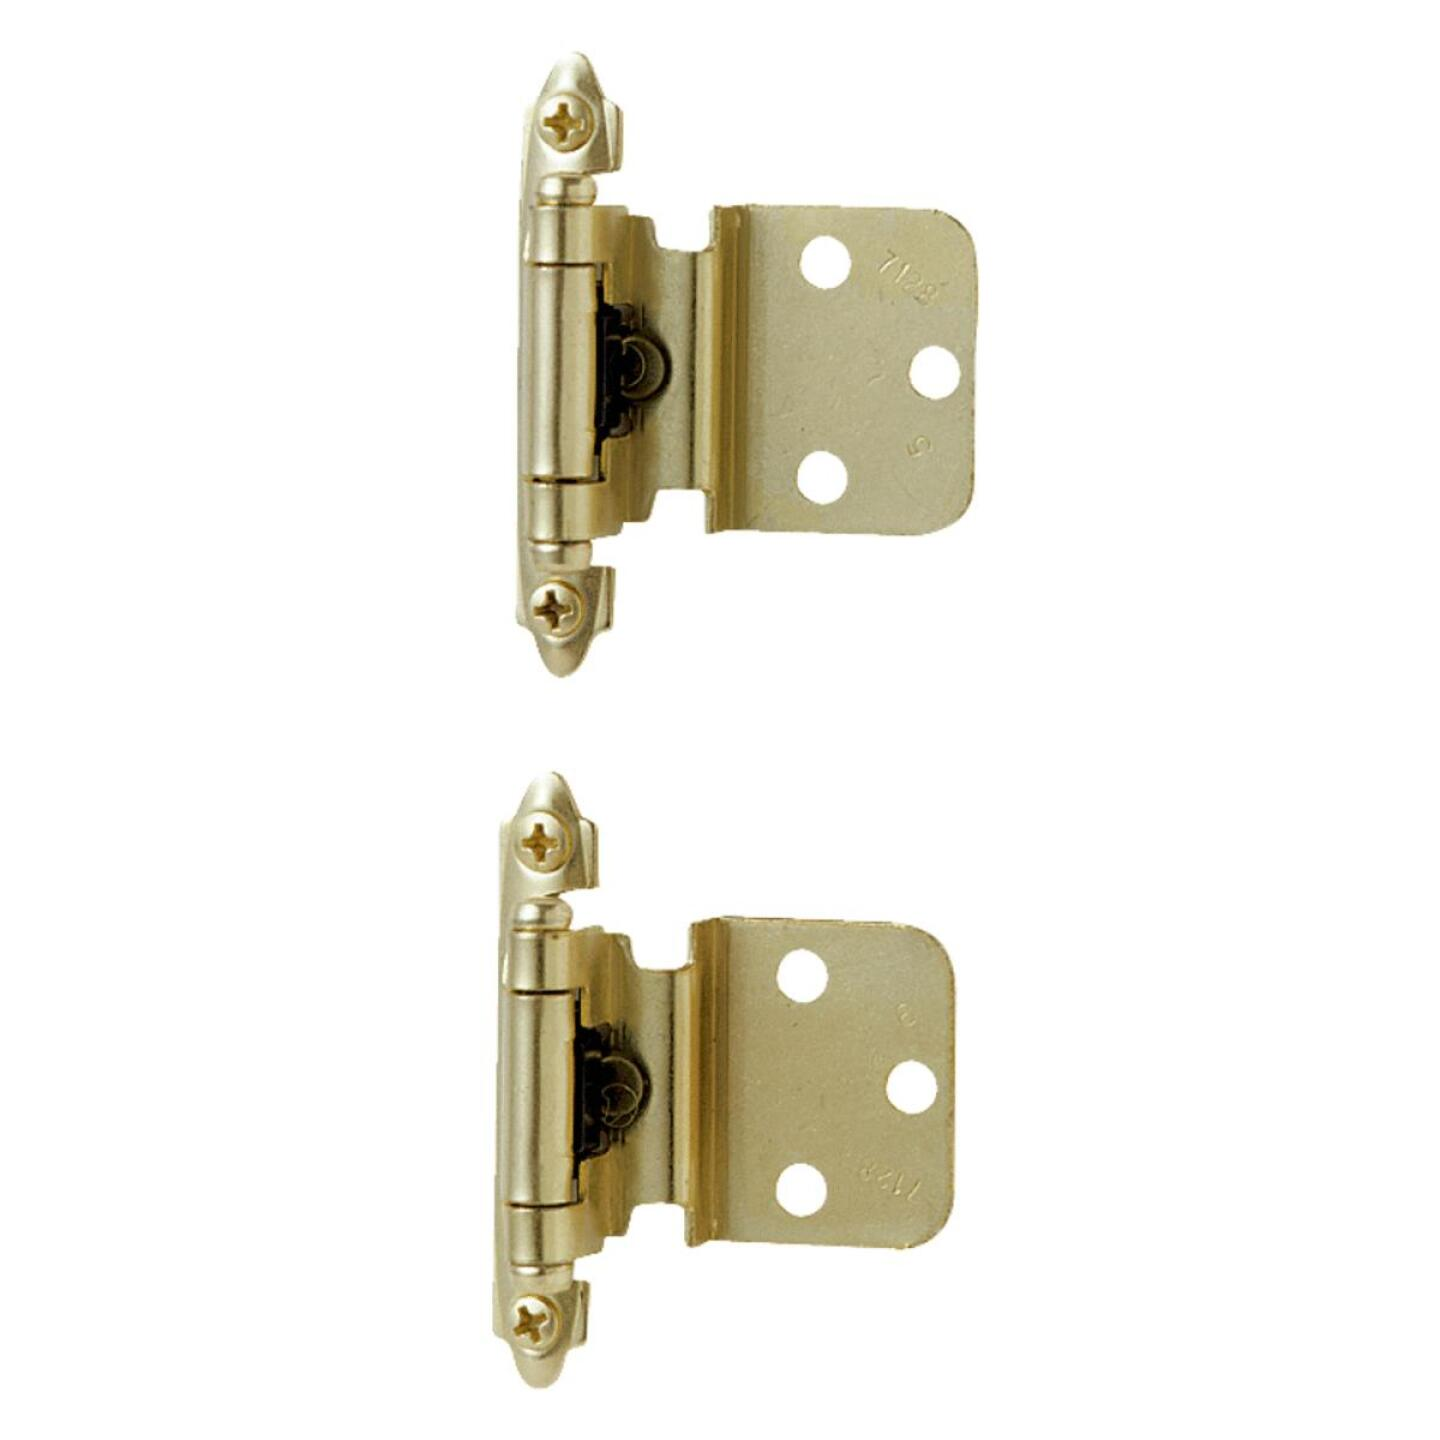 Amerock Polished Brass 3/8 In. Self-Closing Inset Hinge, (2-Pack) Image 1